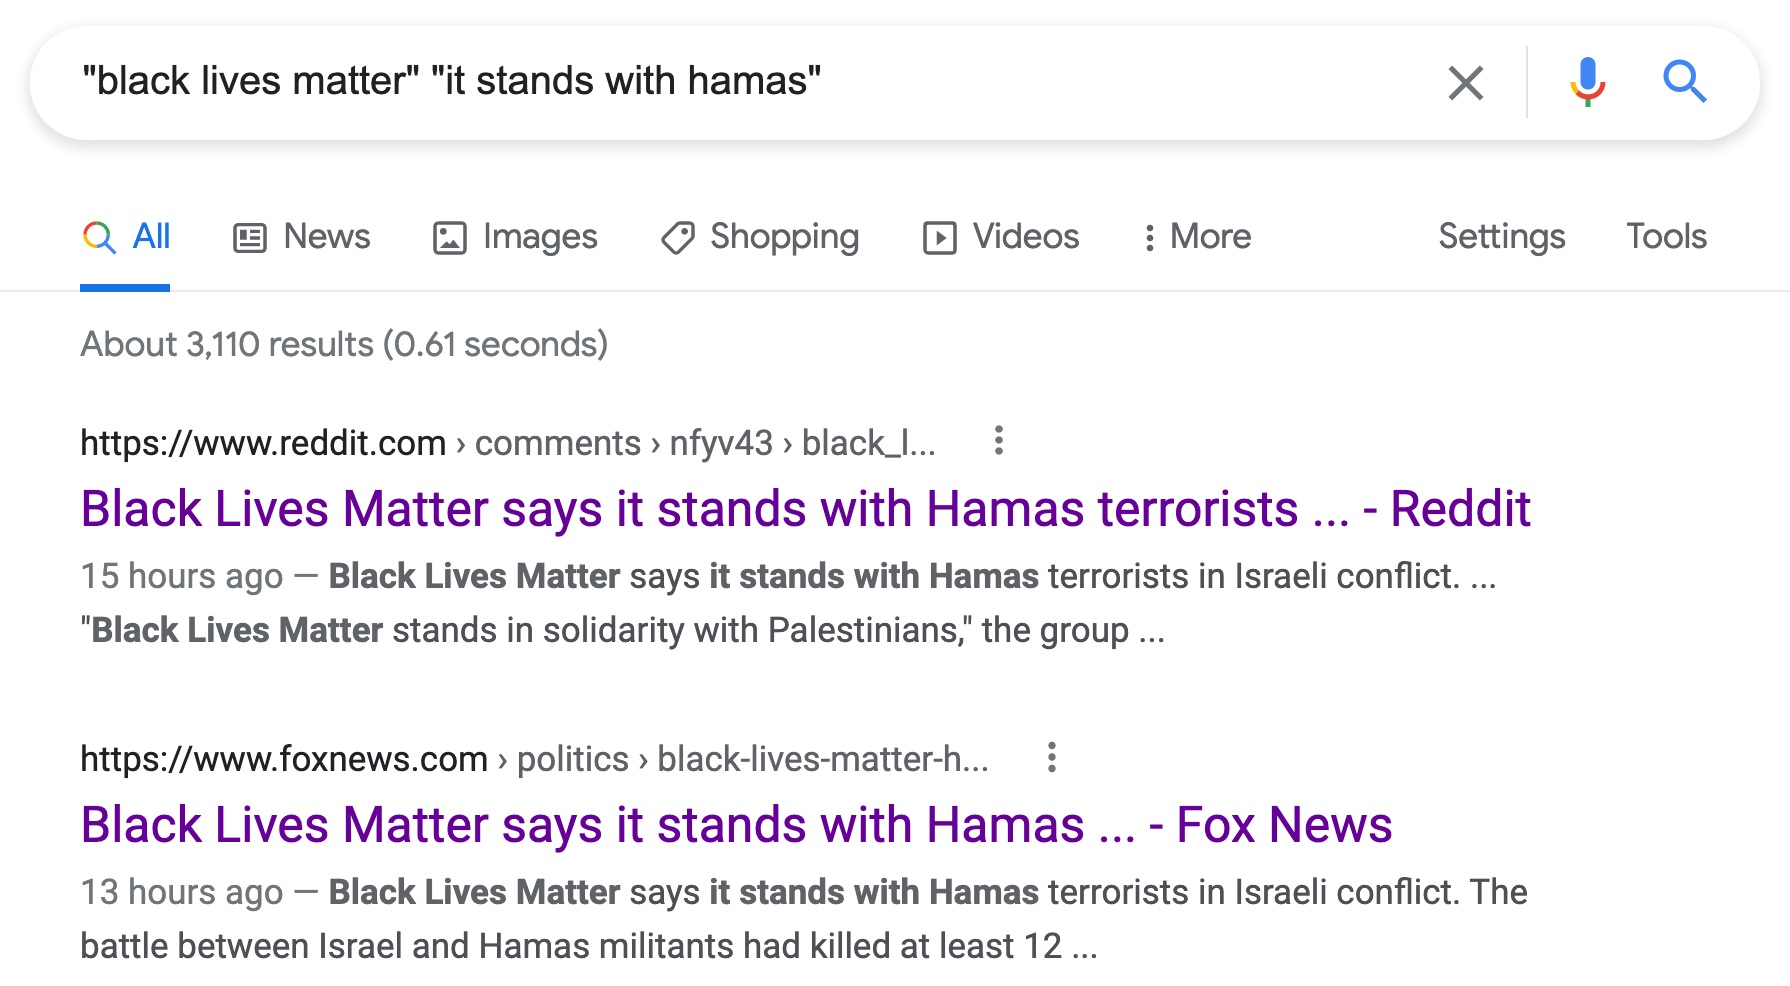 black lives matter stands with hamas